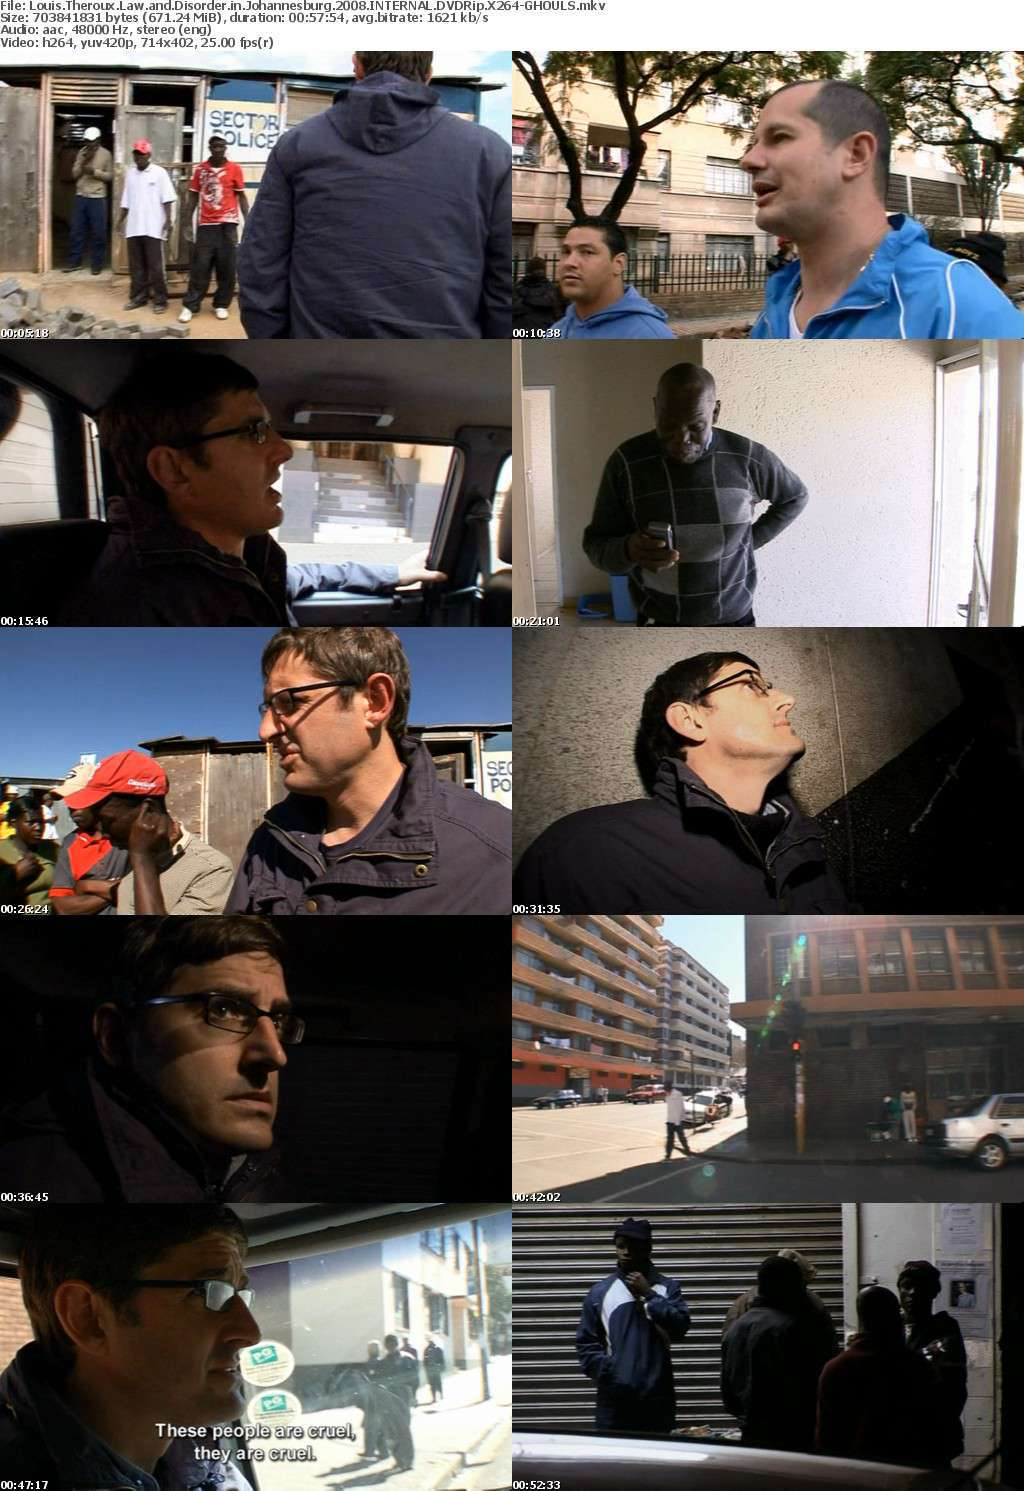 Louis Theroux Law and Disorder in Johannesburg 2008 INTERNAL DVDRip X264-GHOULS